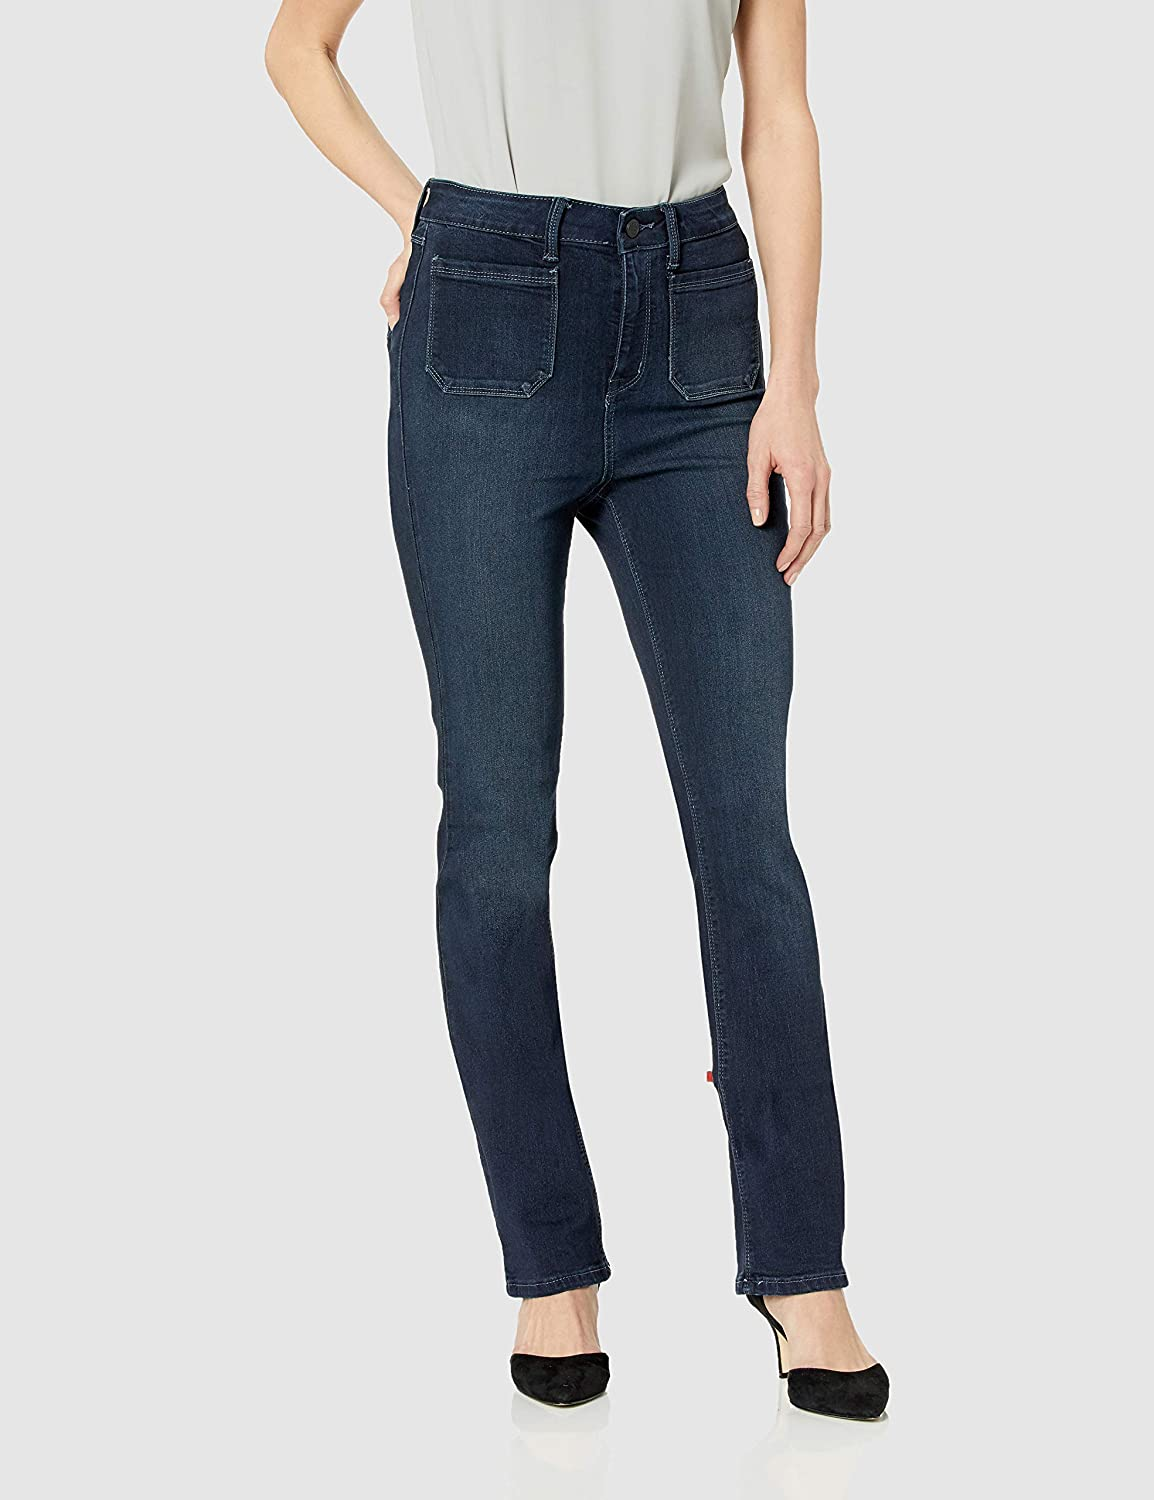 Shaded Dark Laurie Felt Womens Silky Denim High Waisted Patch Pocket Baby Bell Jeans Jeans